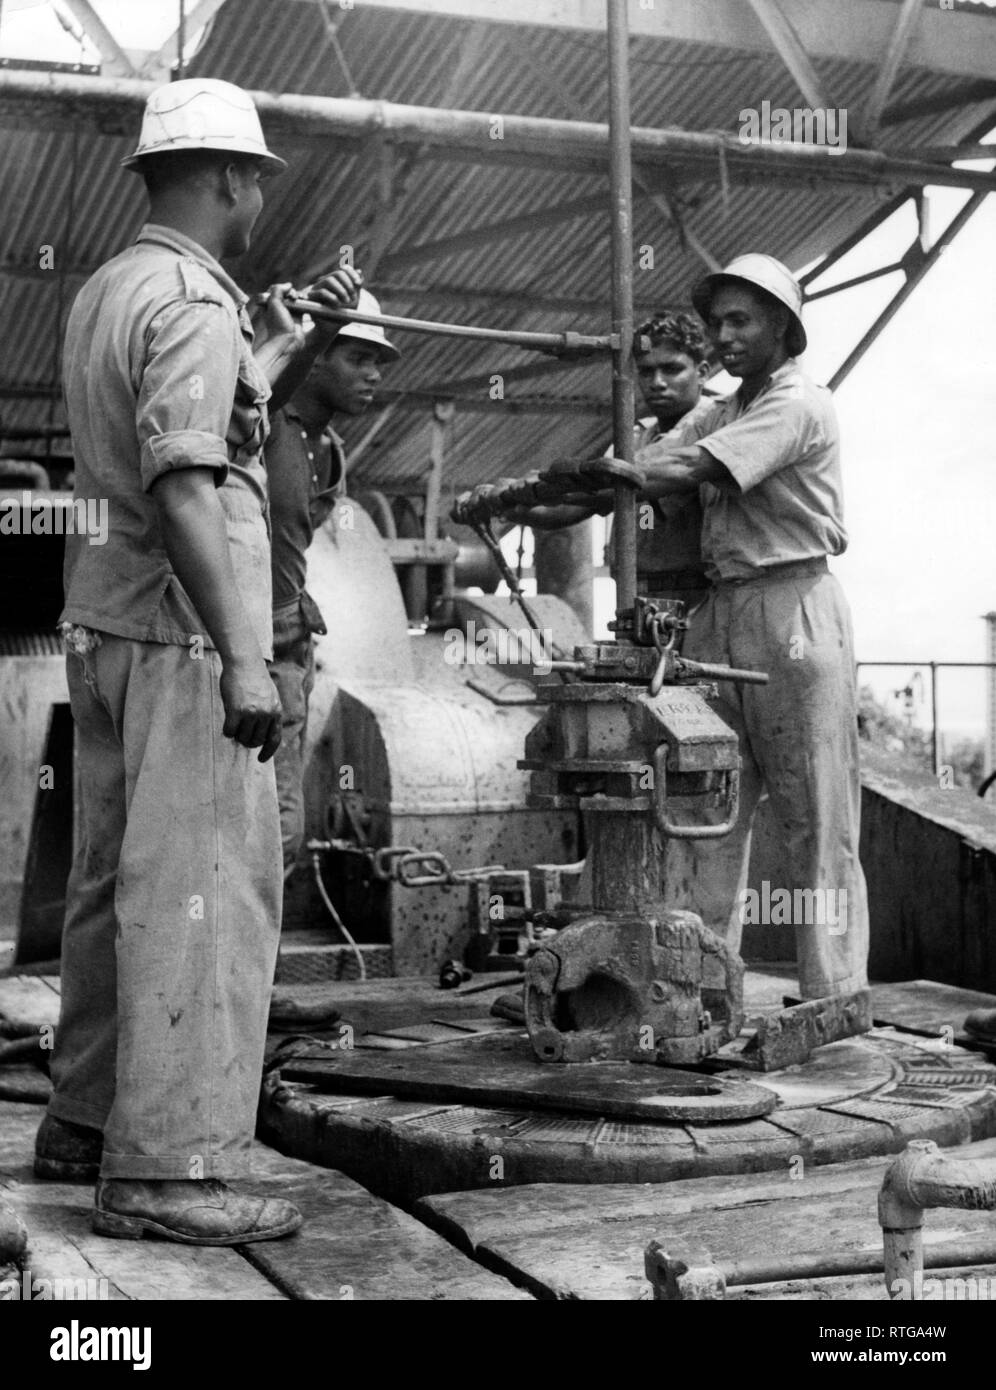 British asia, brunei, Indian workers to oil rigs, 1953 - Stock Image